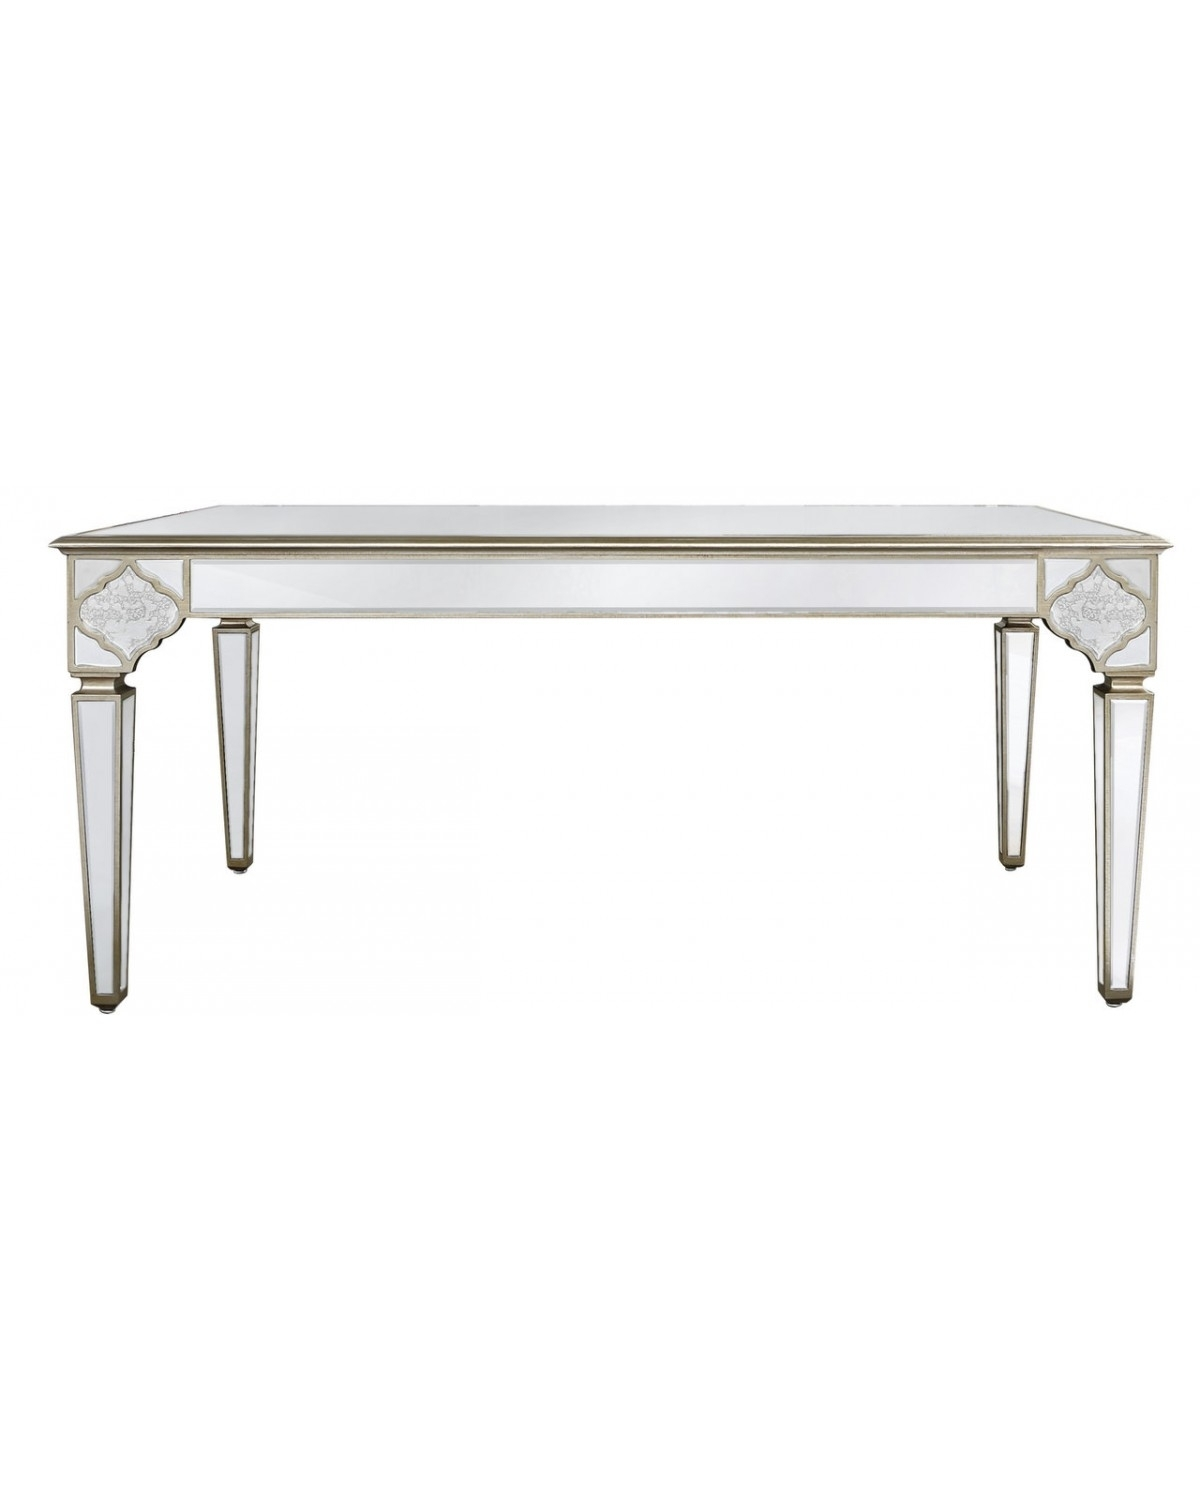 Marrakech Mirror Dining Table | Cimc Home for Marrakesh Side Tables (Image 8 of 30)